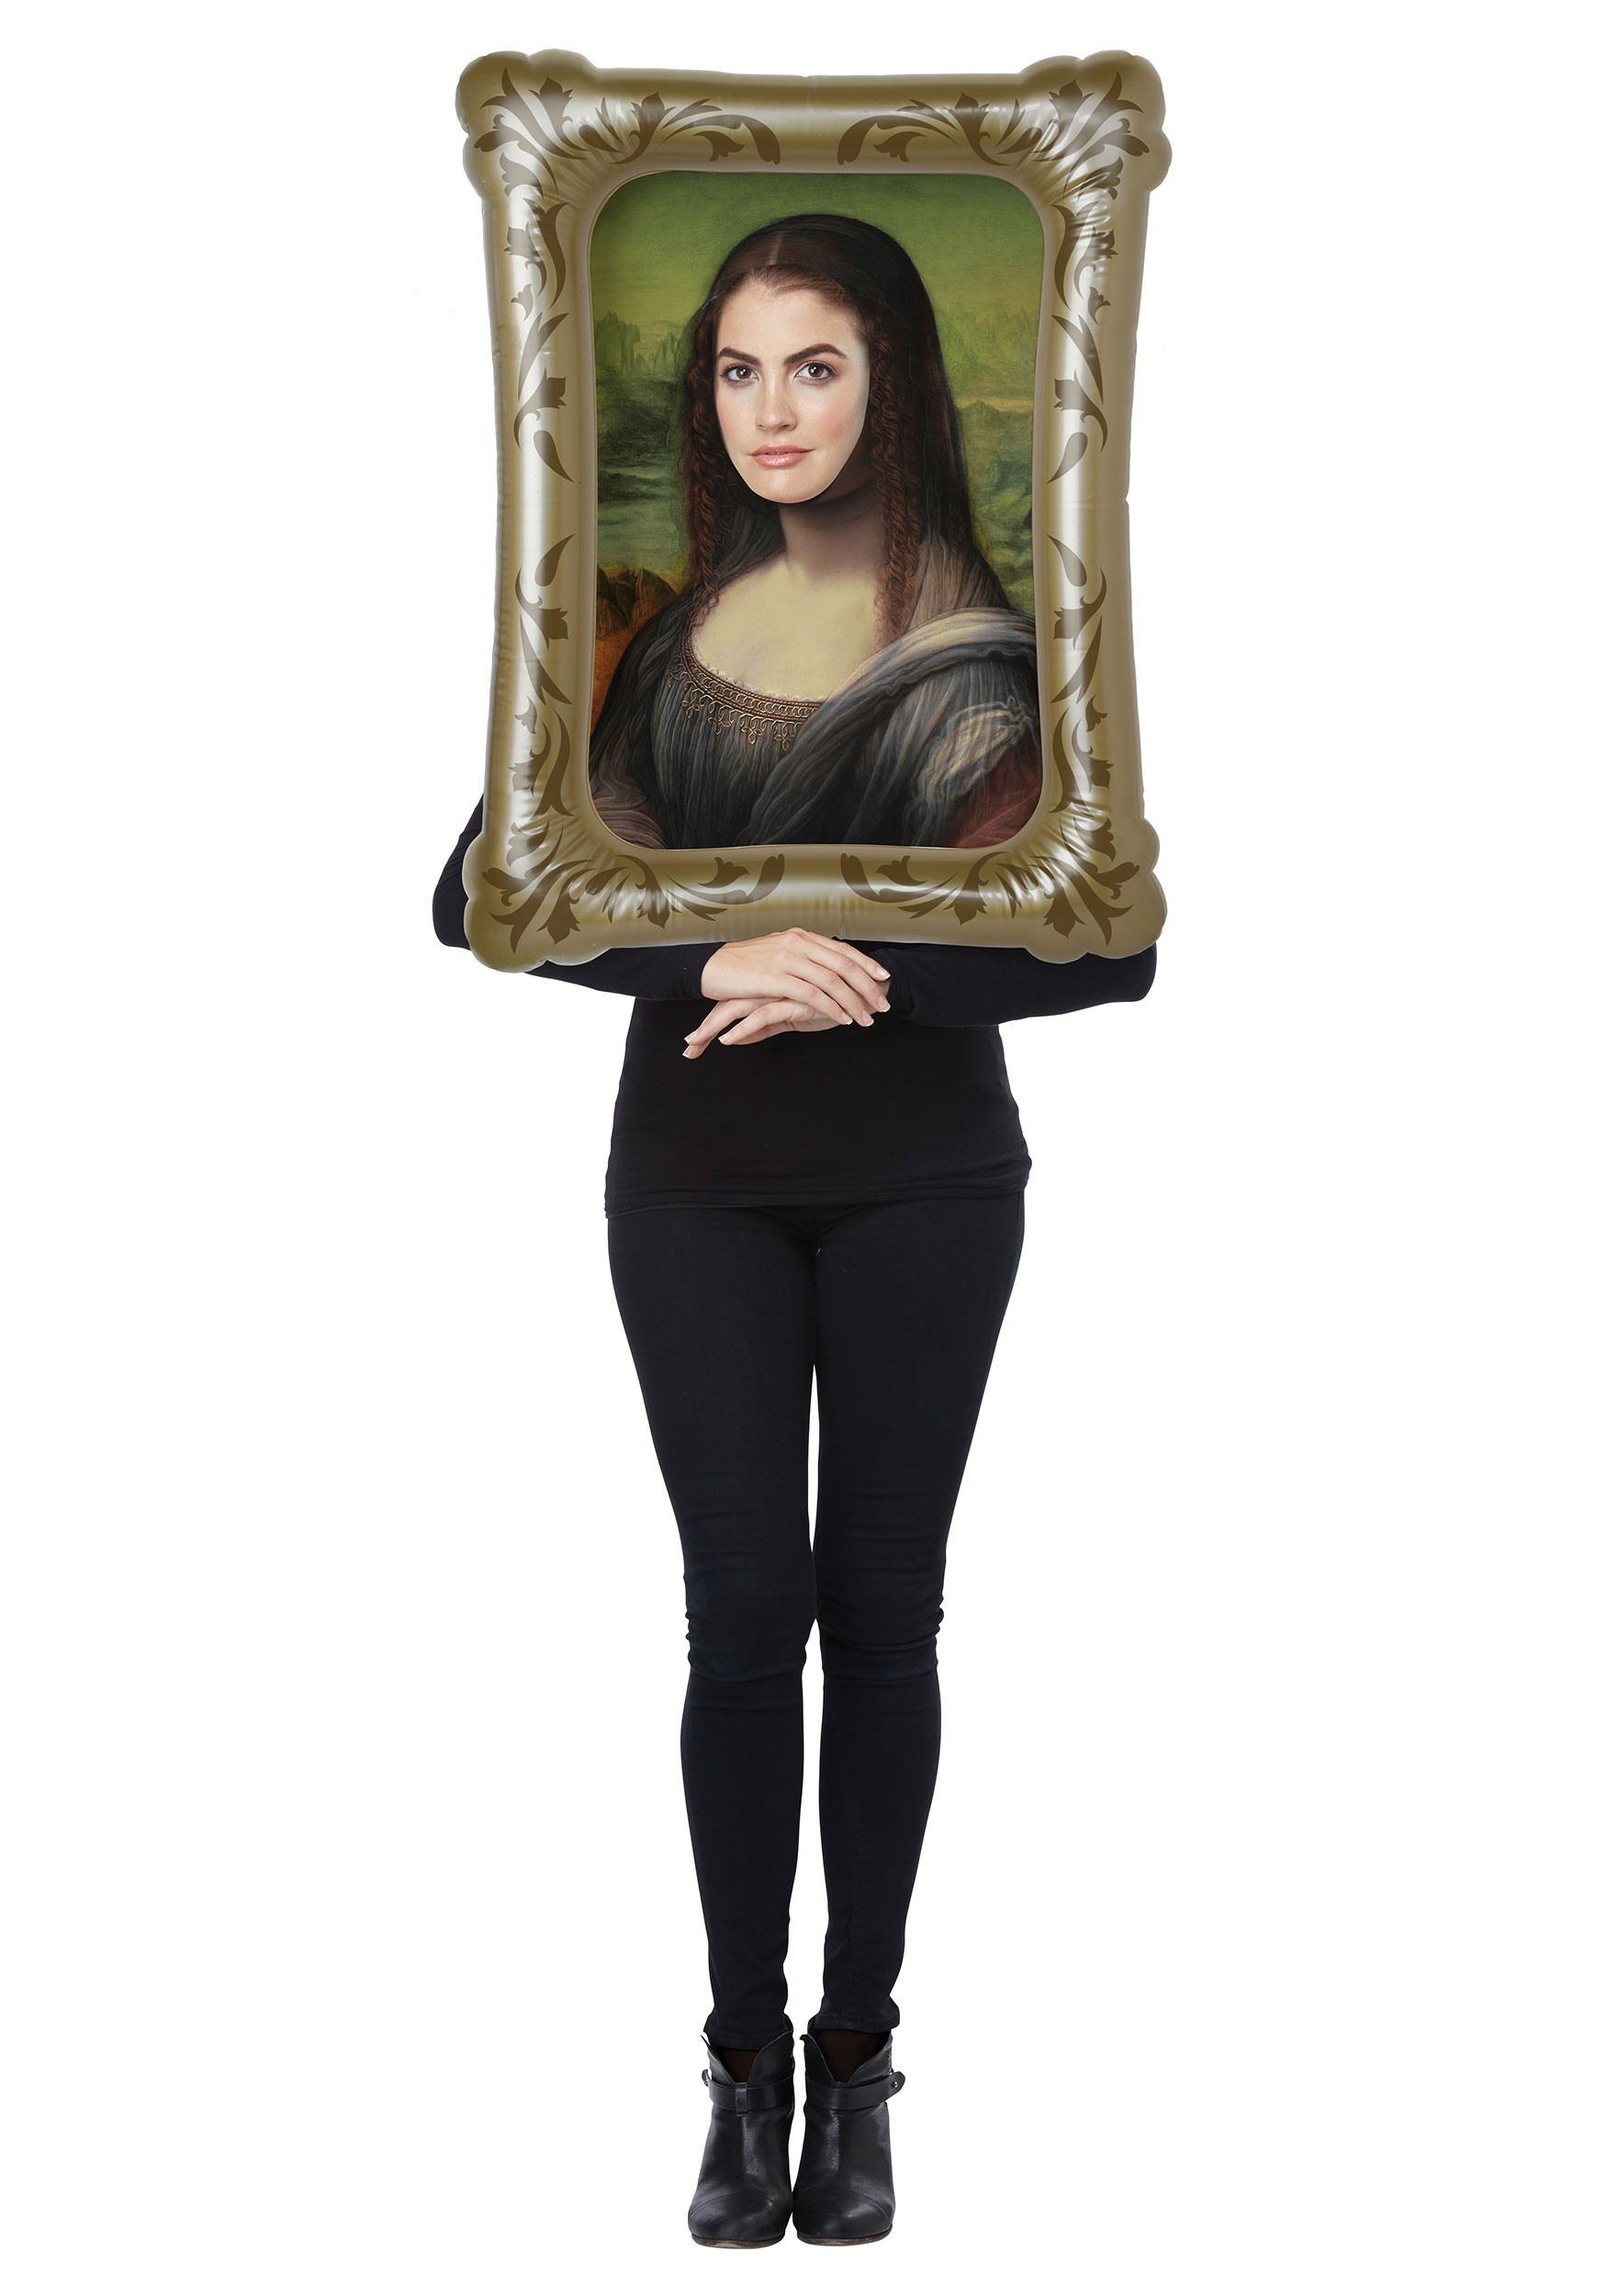 Mona Lisa Costume Kit-book character costume ideas for adults